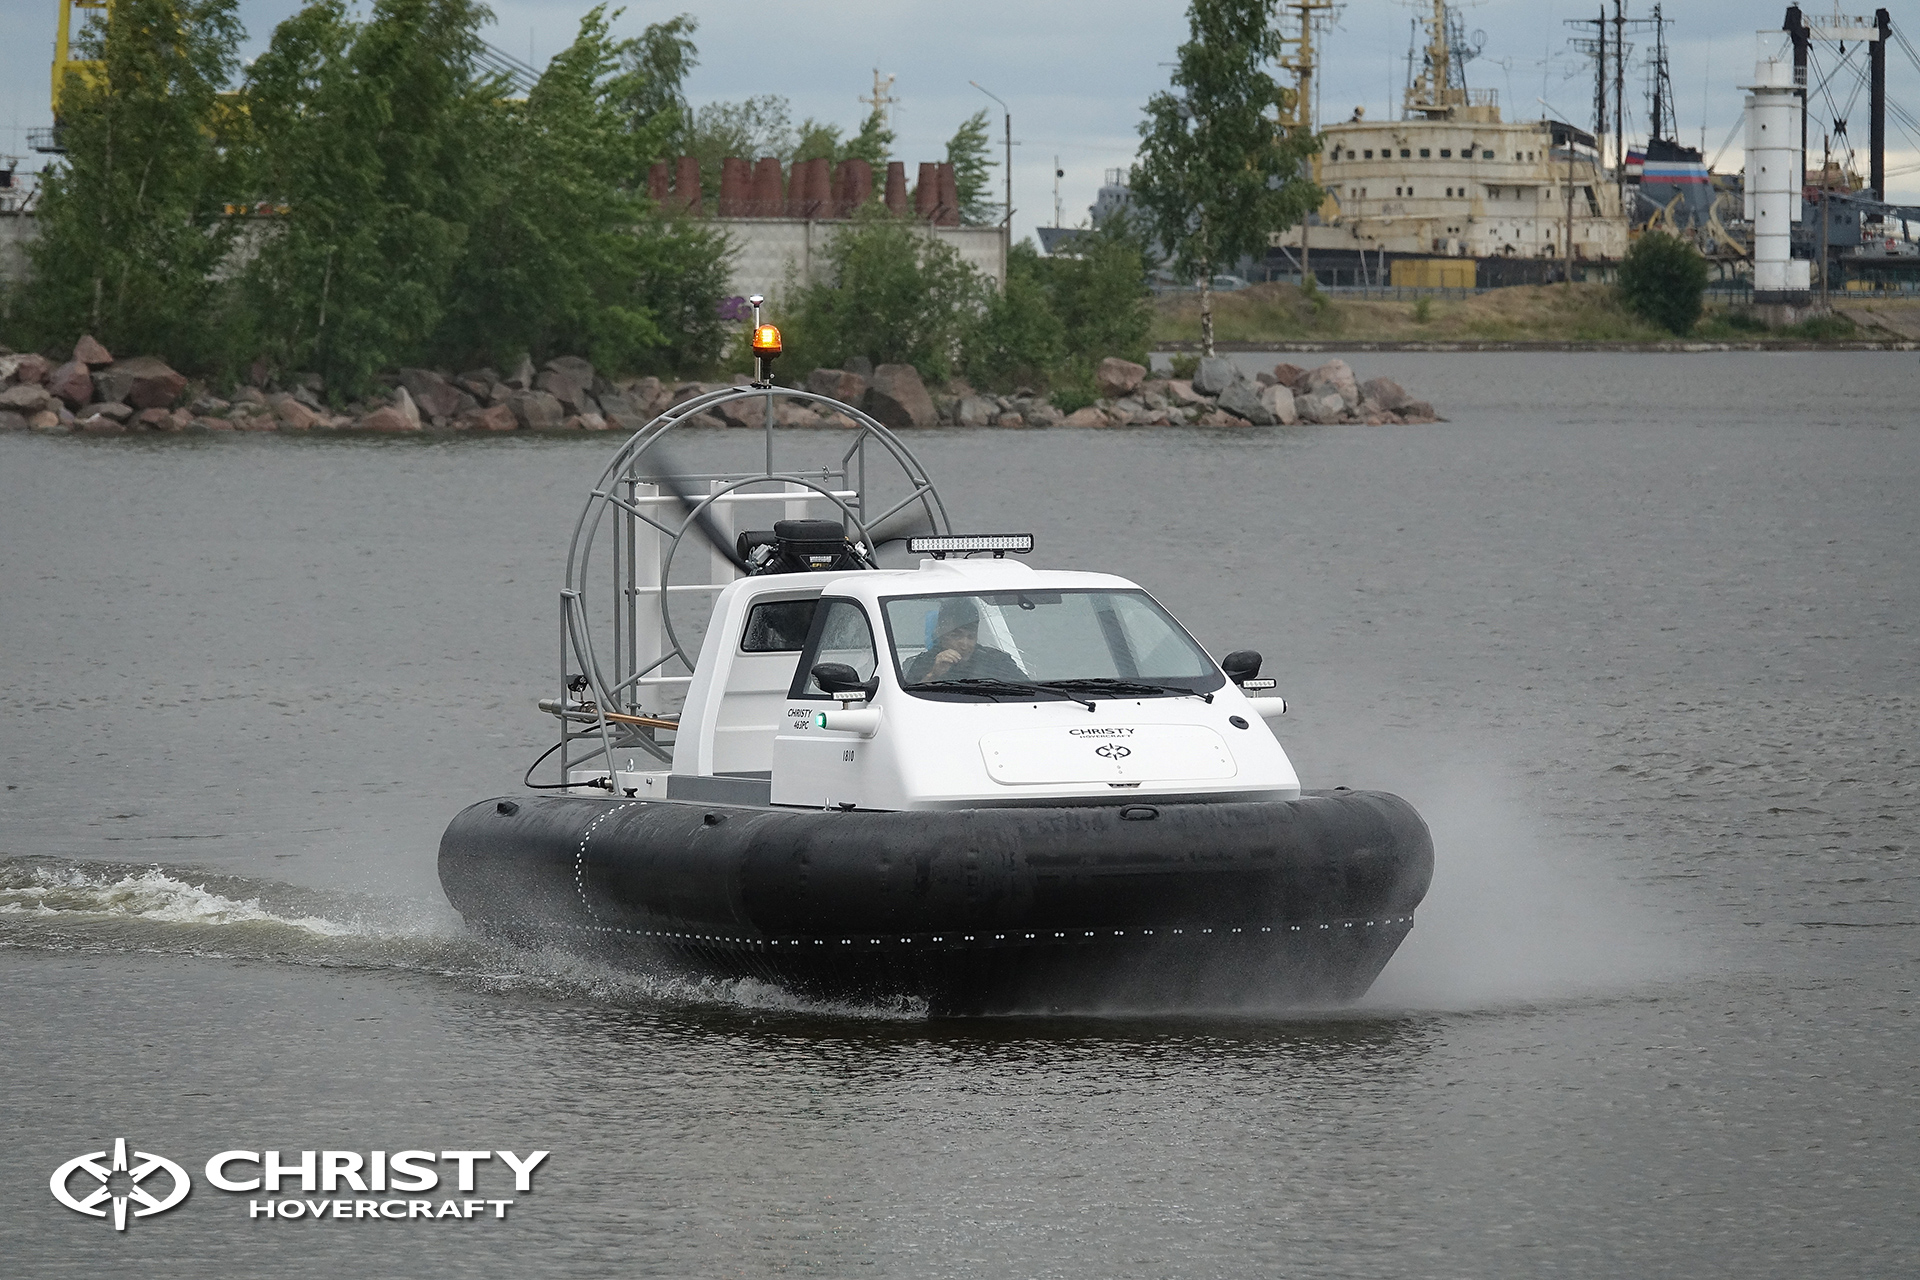 Hovercraft Christy 463 PC in Storm 290618 22.jpg | фото №19